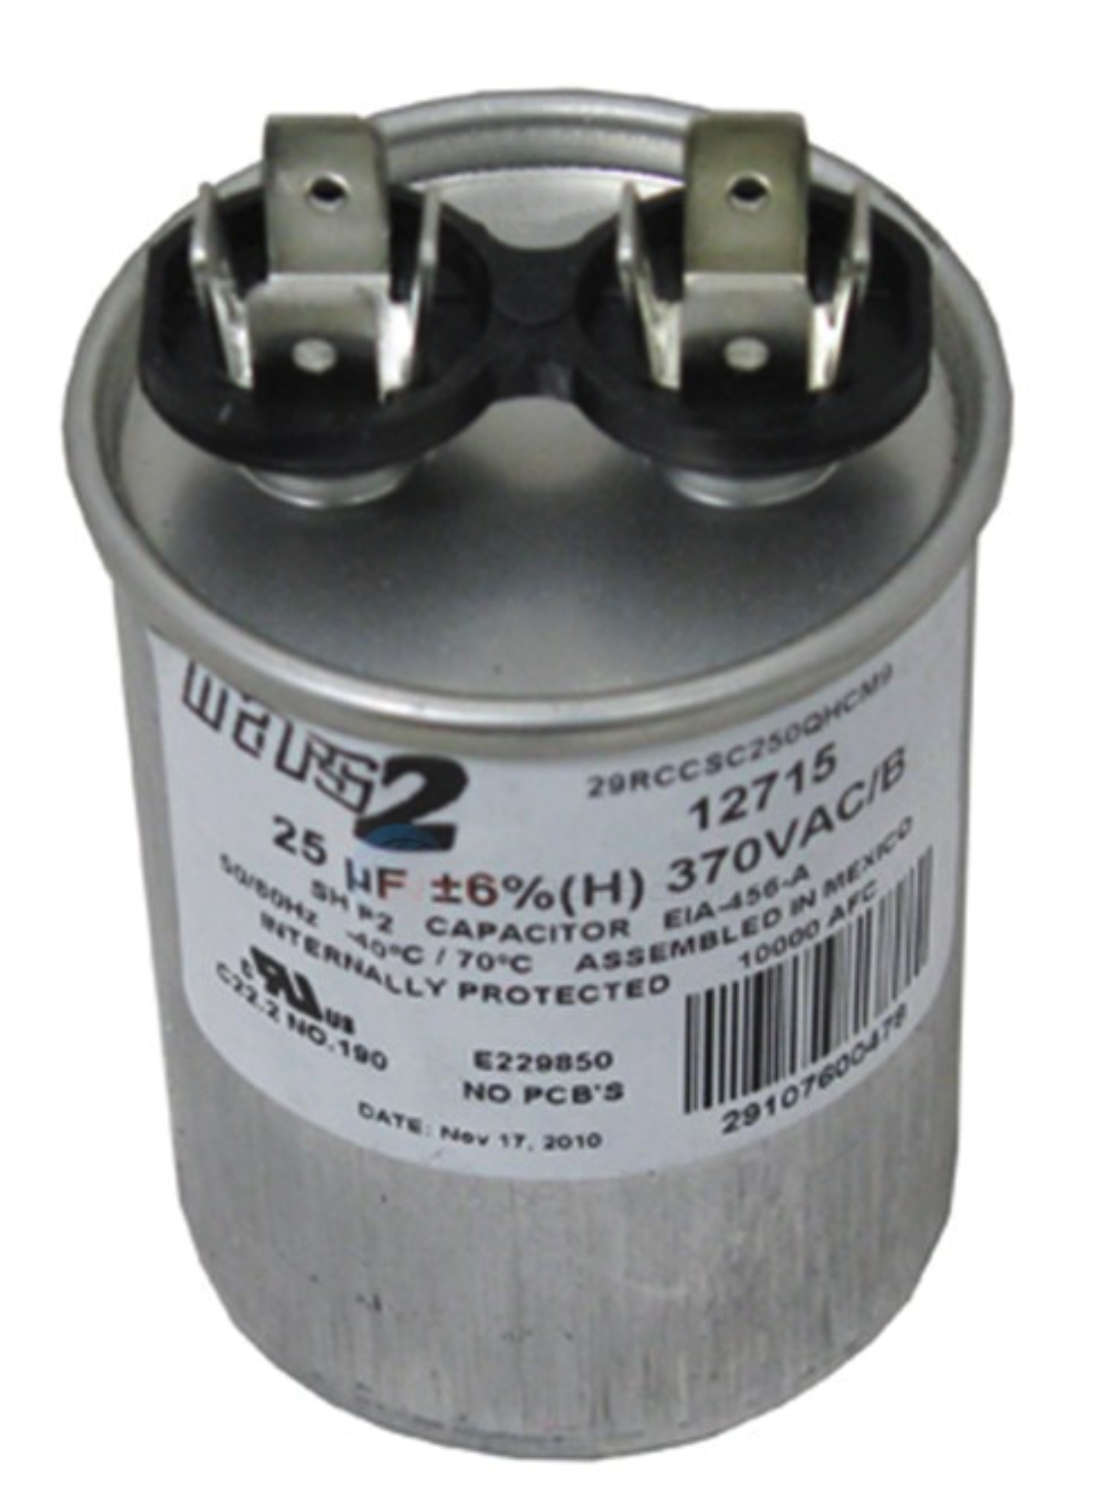 Electric Motor Starting Capacitor Selection Wiring A Ao Smith Or Other Replacement 25mfd 370v 628318 307 At Inspectapedia